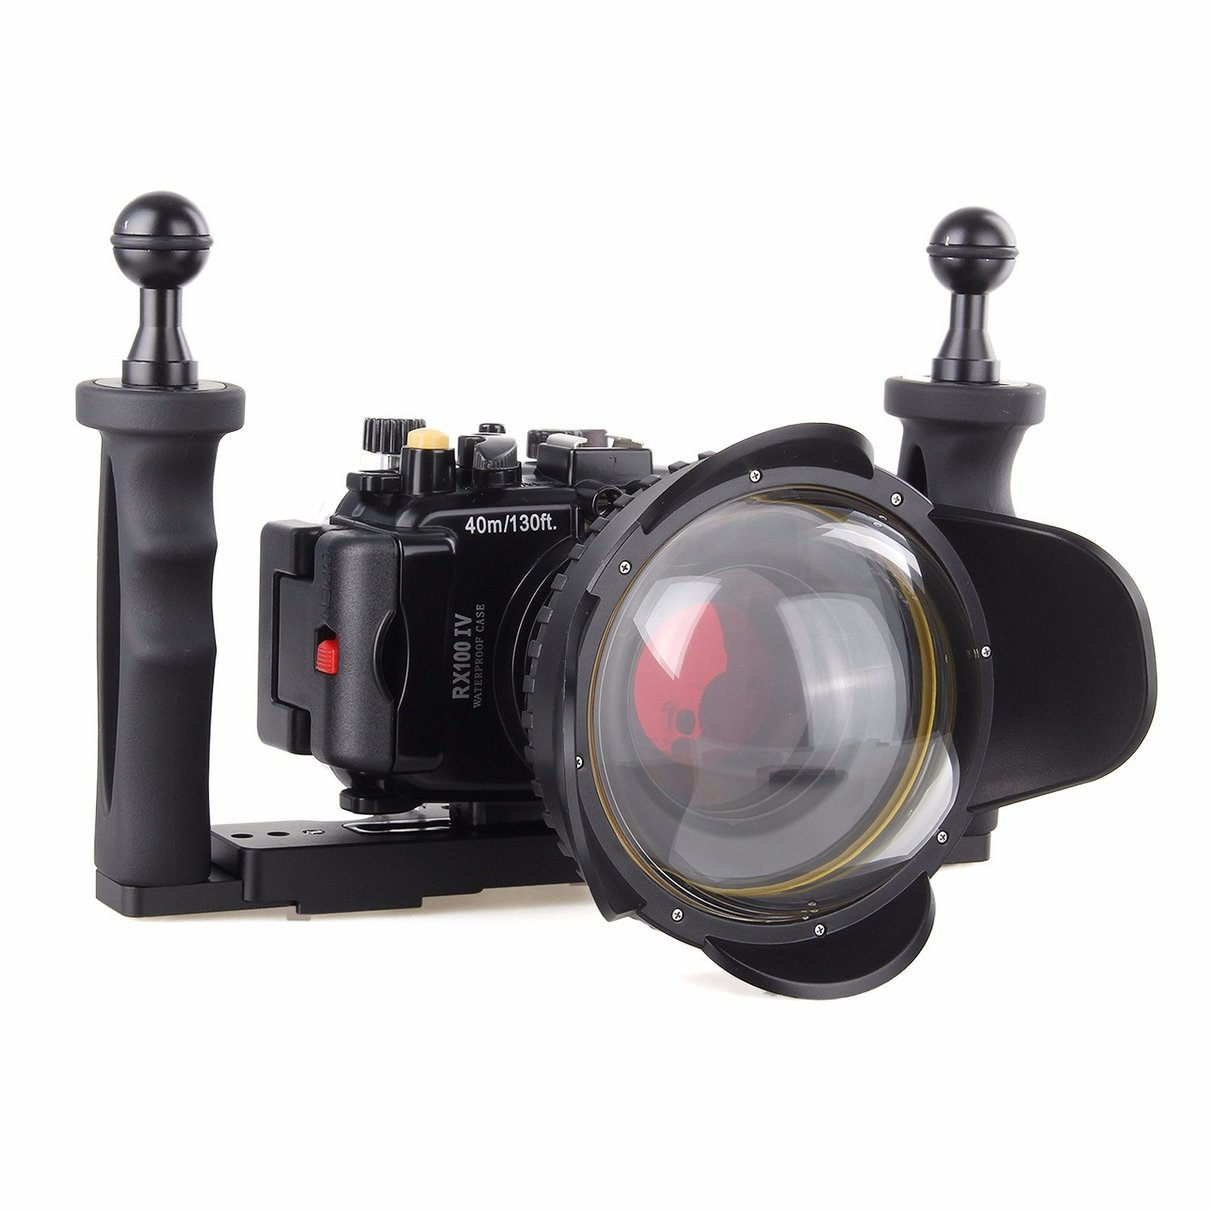 40M Underwater Waterproof Camera Housing Diving Case for Sony RX100 IV M4 + Red Filter + Fisheye Lens + Two Hands Aluminium Tray meikon underwater camera housing for sony a6000 16 50mm 40m 130ft diving handle 67mm red diving filter